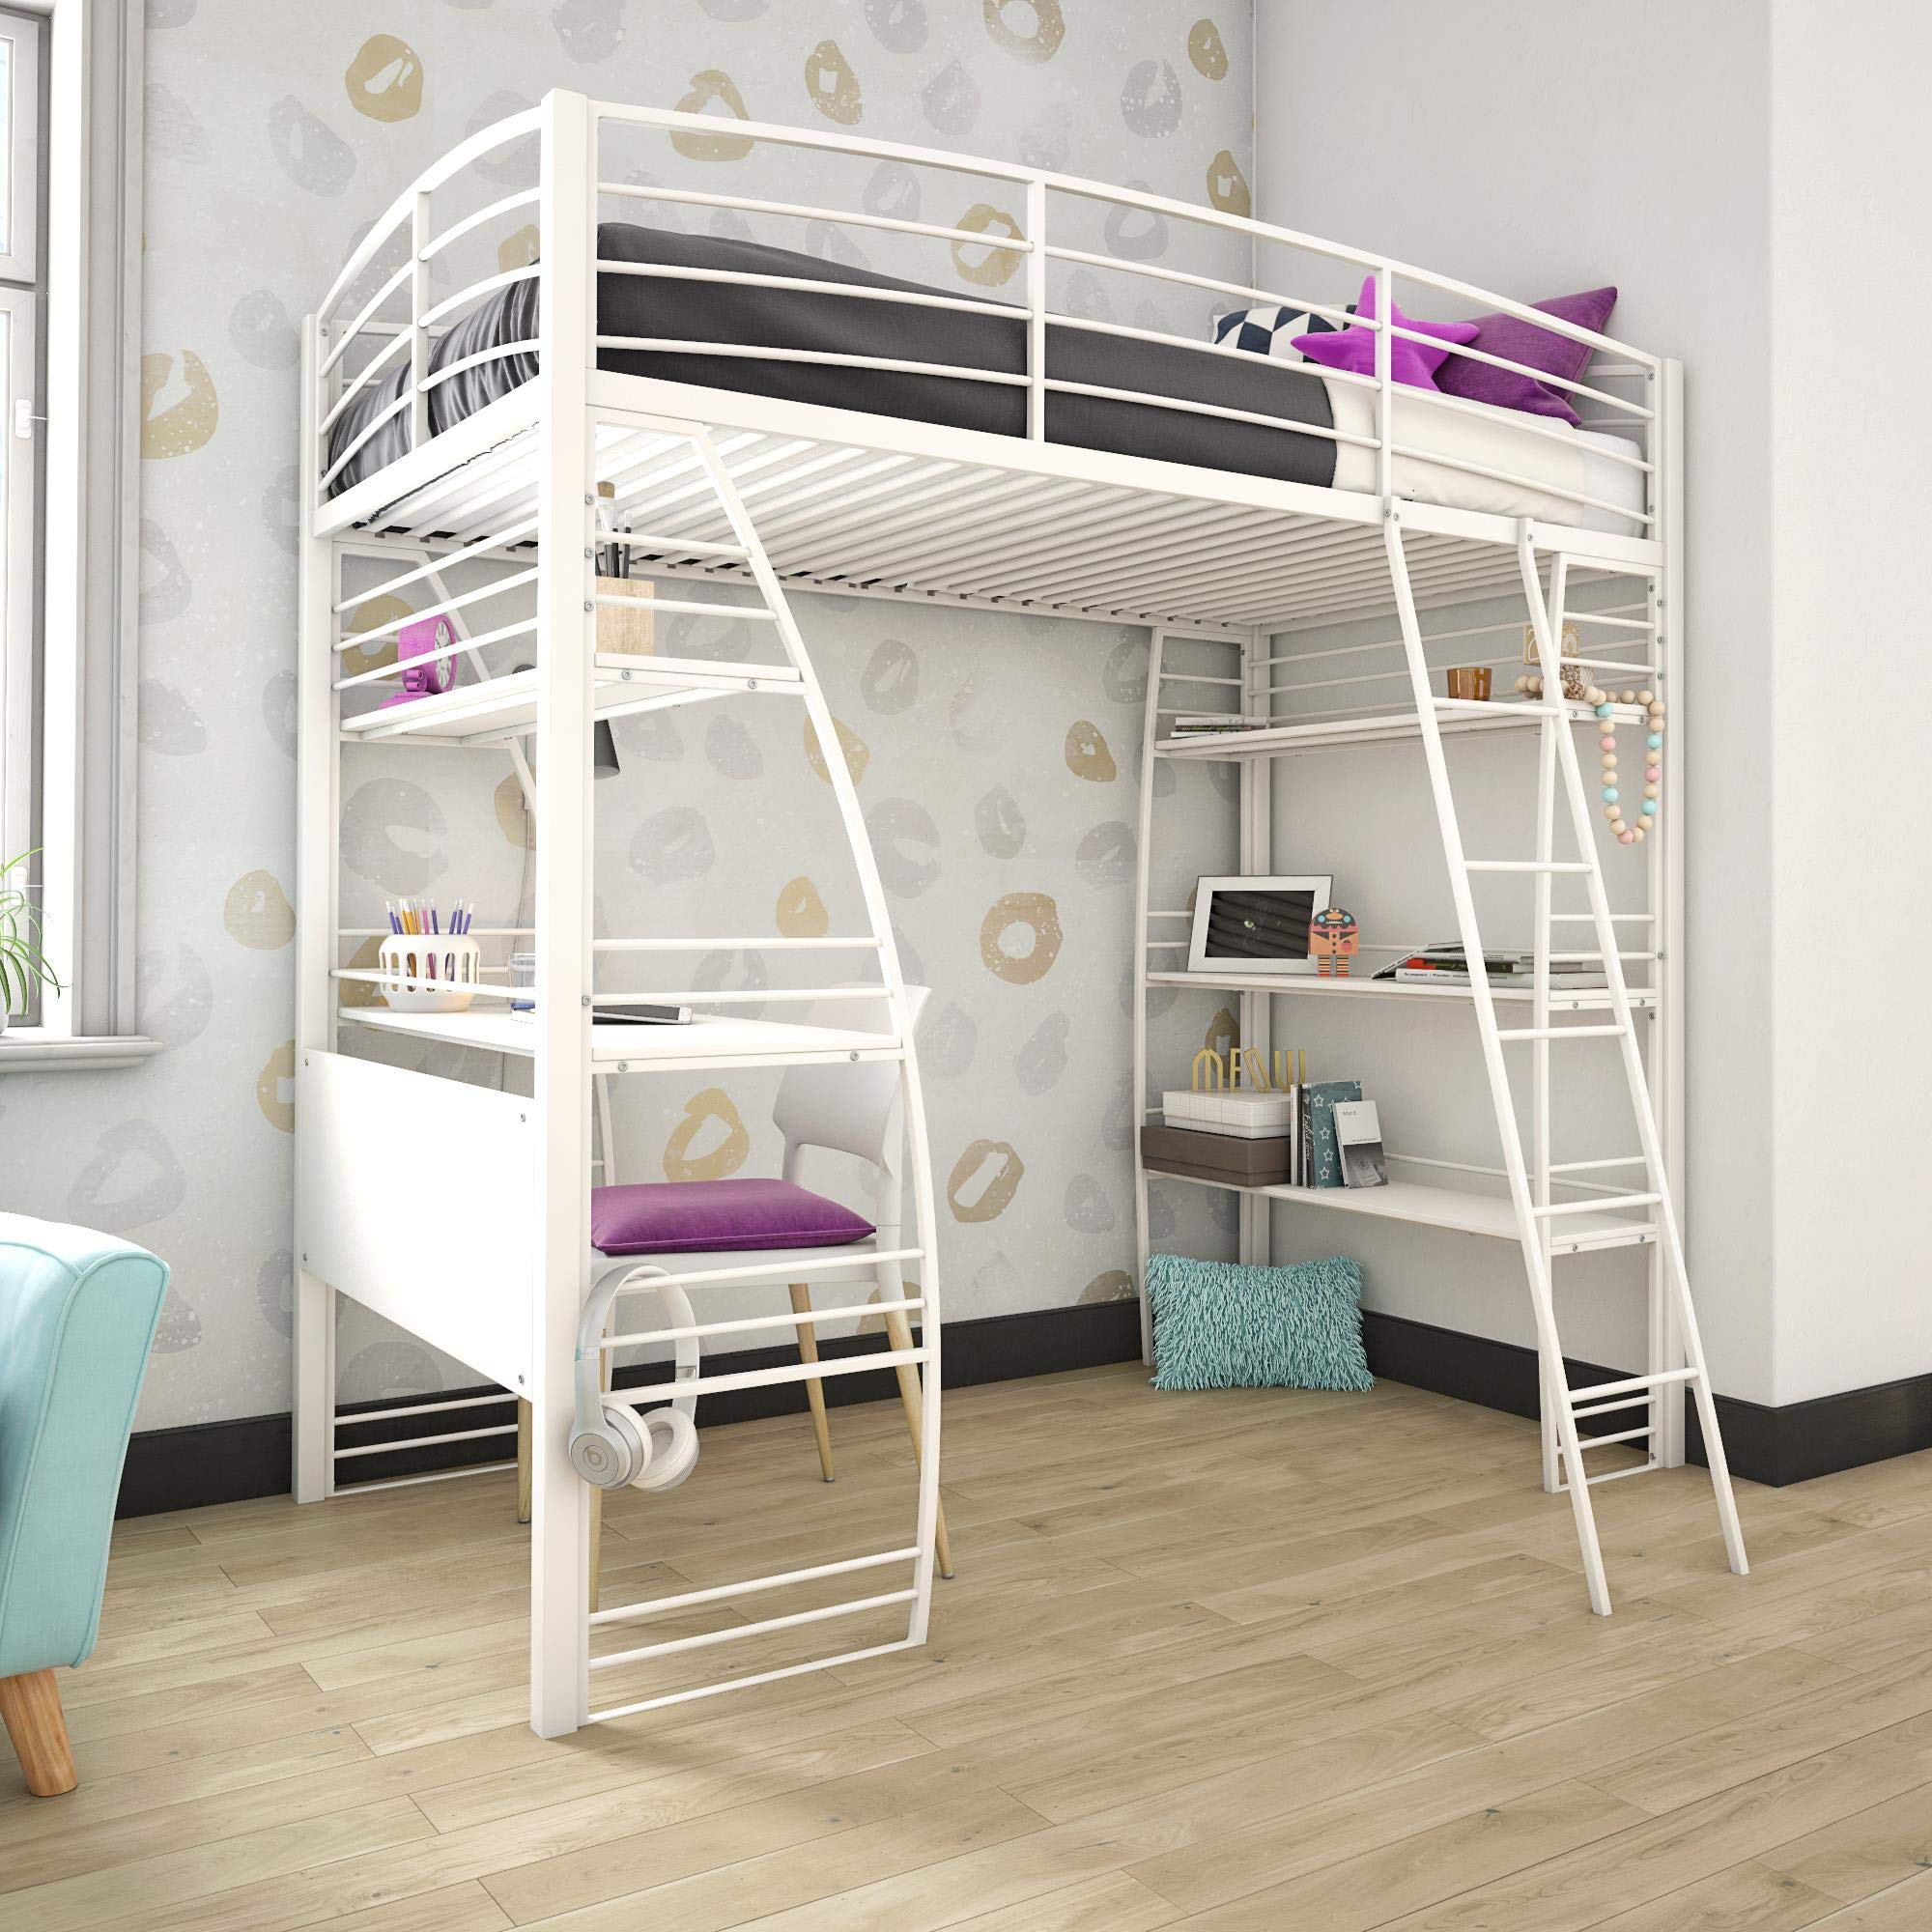 DHP 4016129 Studio Twin Loft Integrated Desk and Shelves, White Bed, by DHP